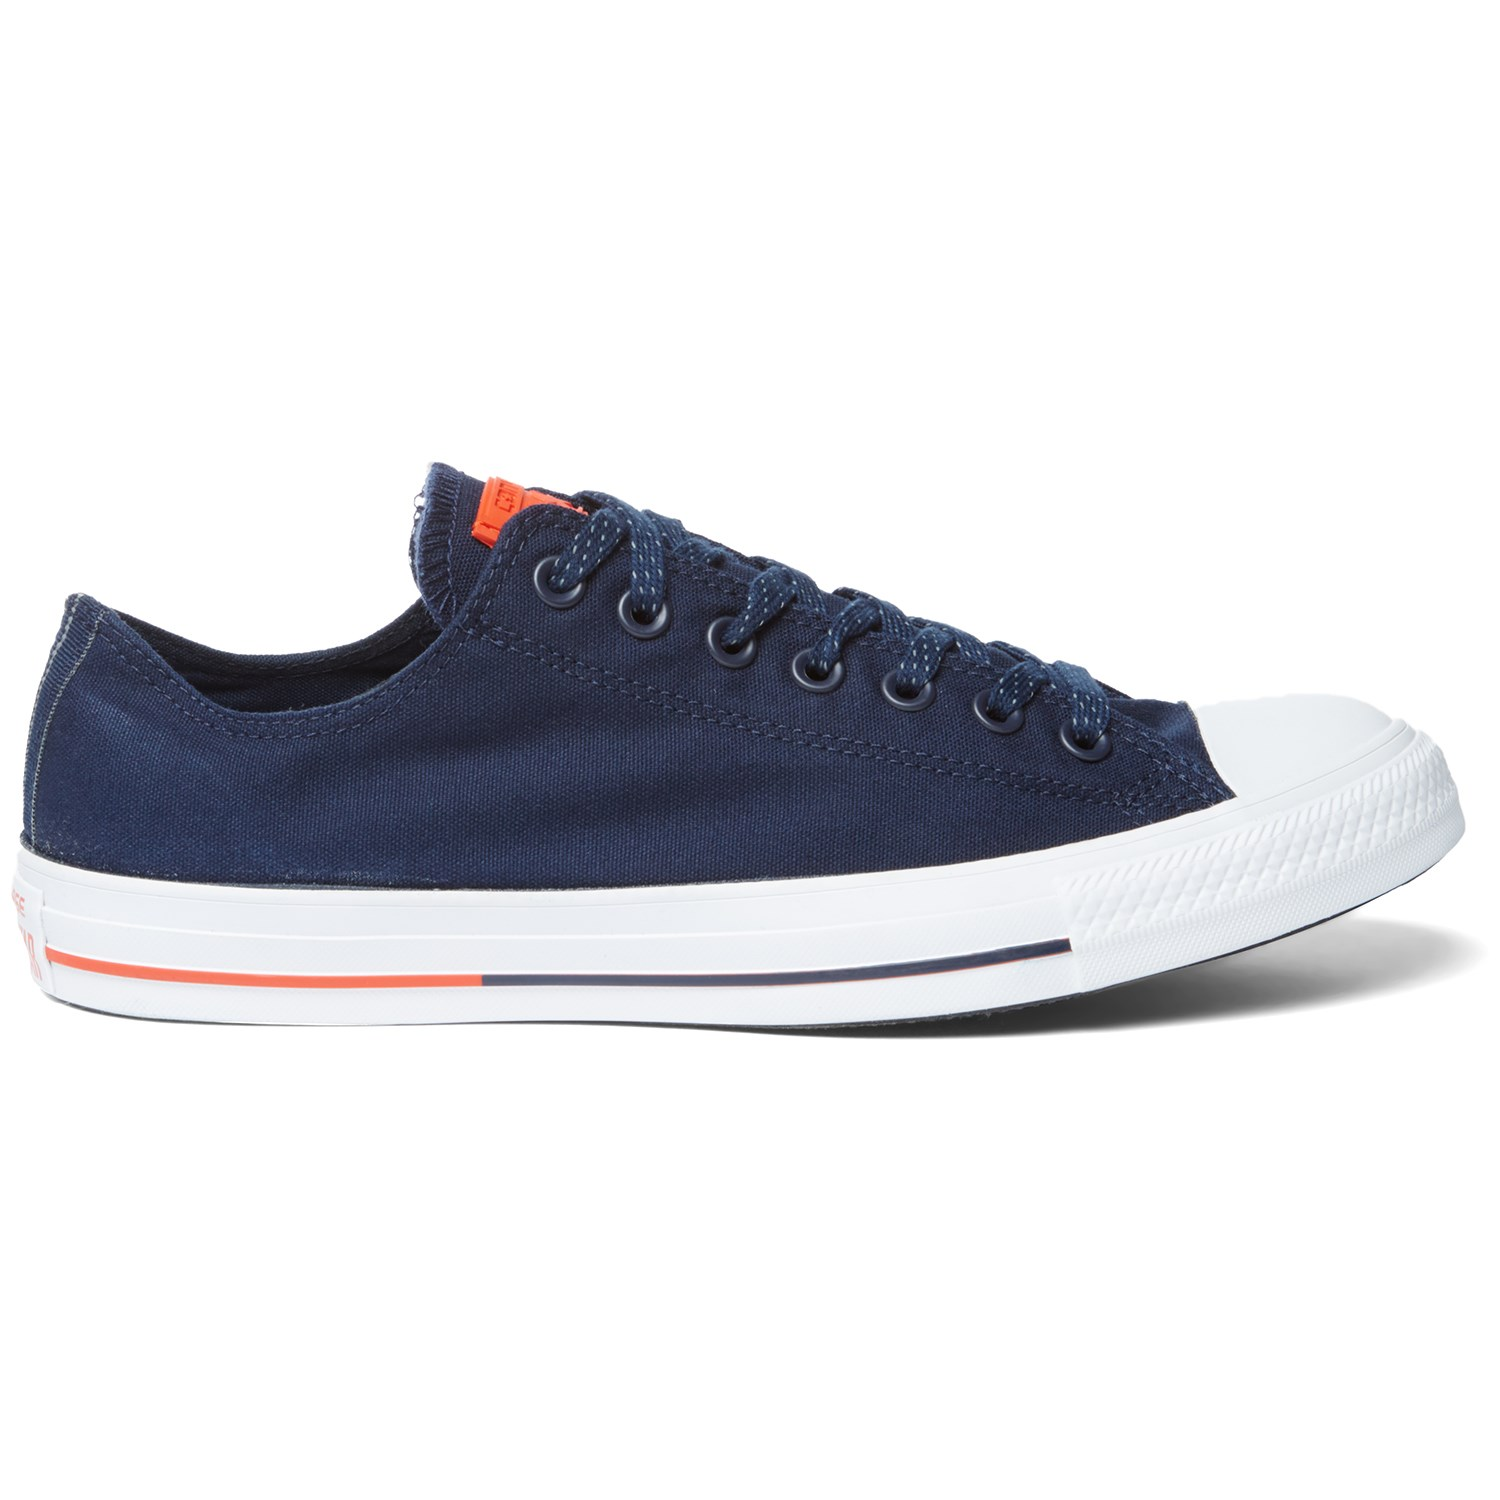 f5b966c03d74 Converse Chuck Taylor All Star Shield Canvas Shoes